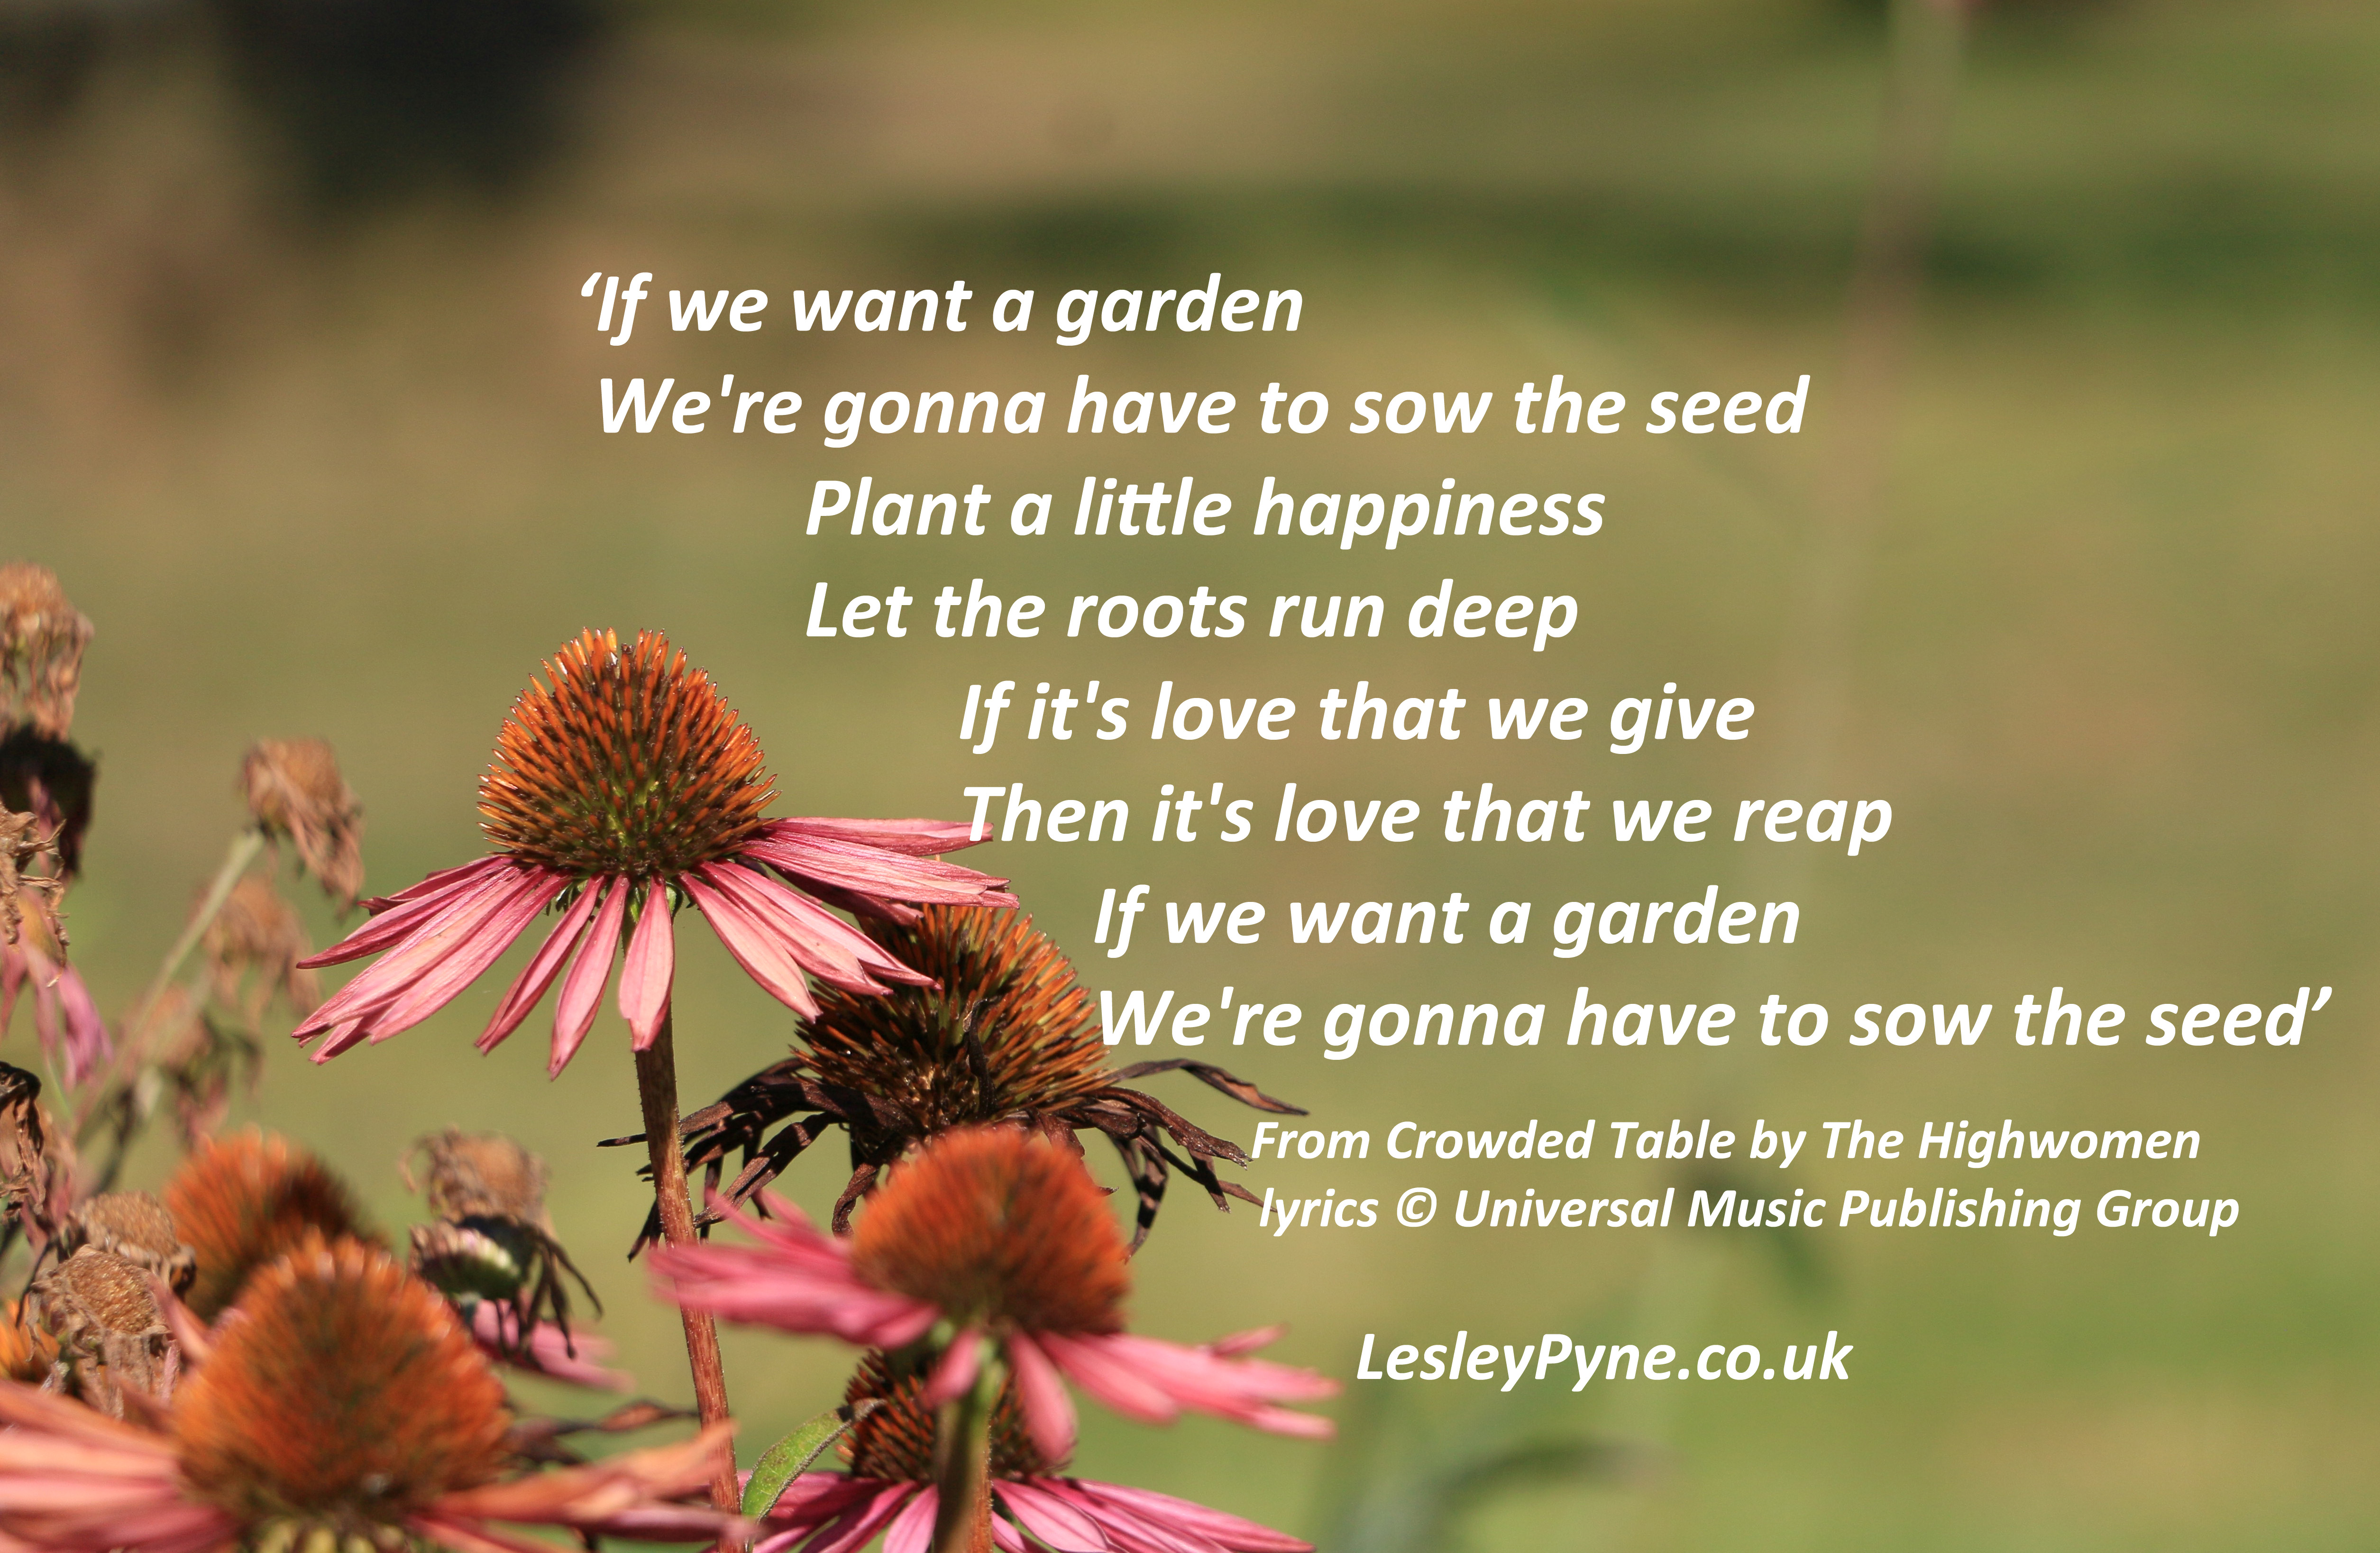 Are you ready to plant some seeds?